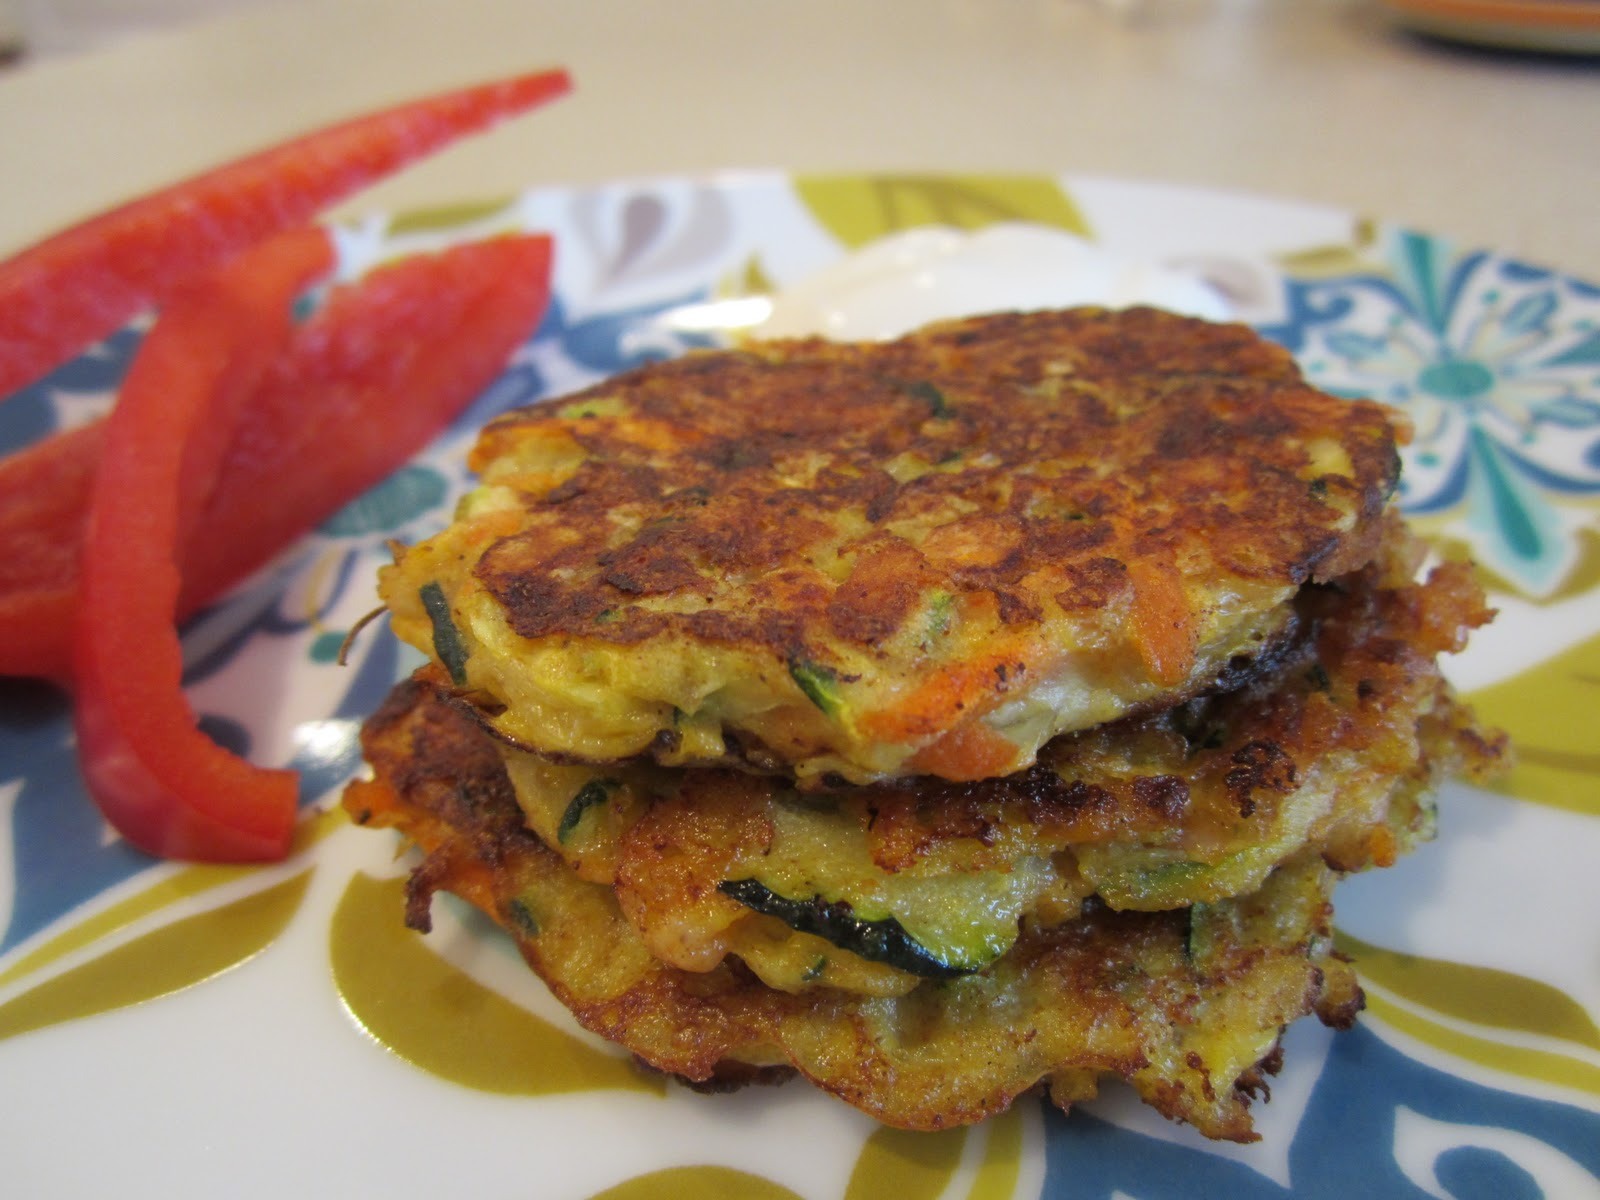 The Full Plate Blog: zucchini-carrot fritters